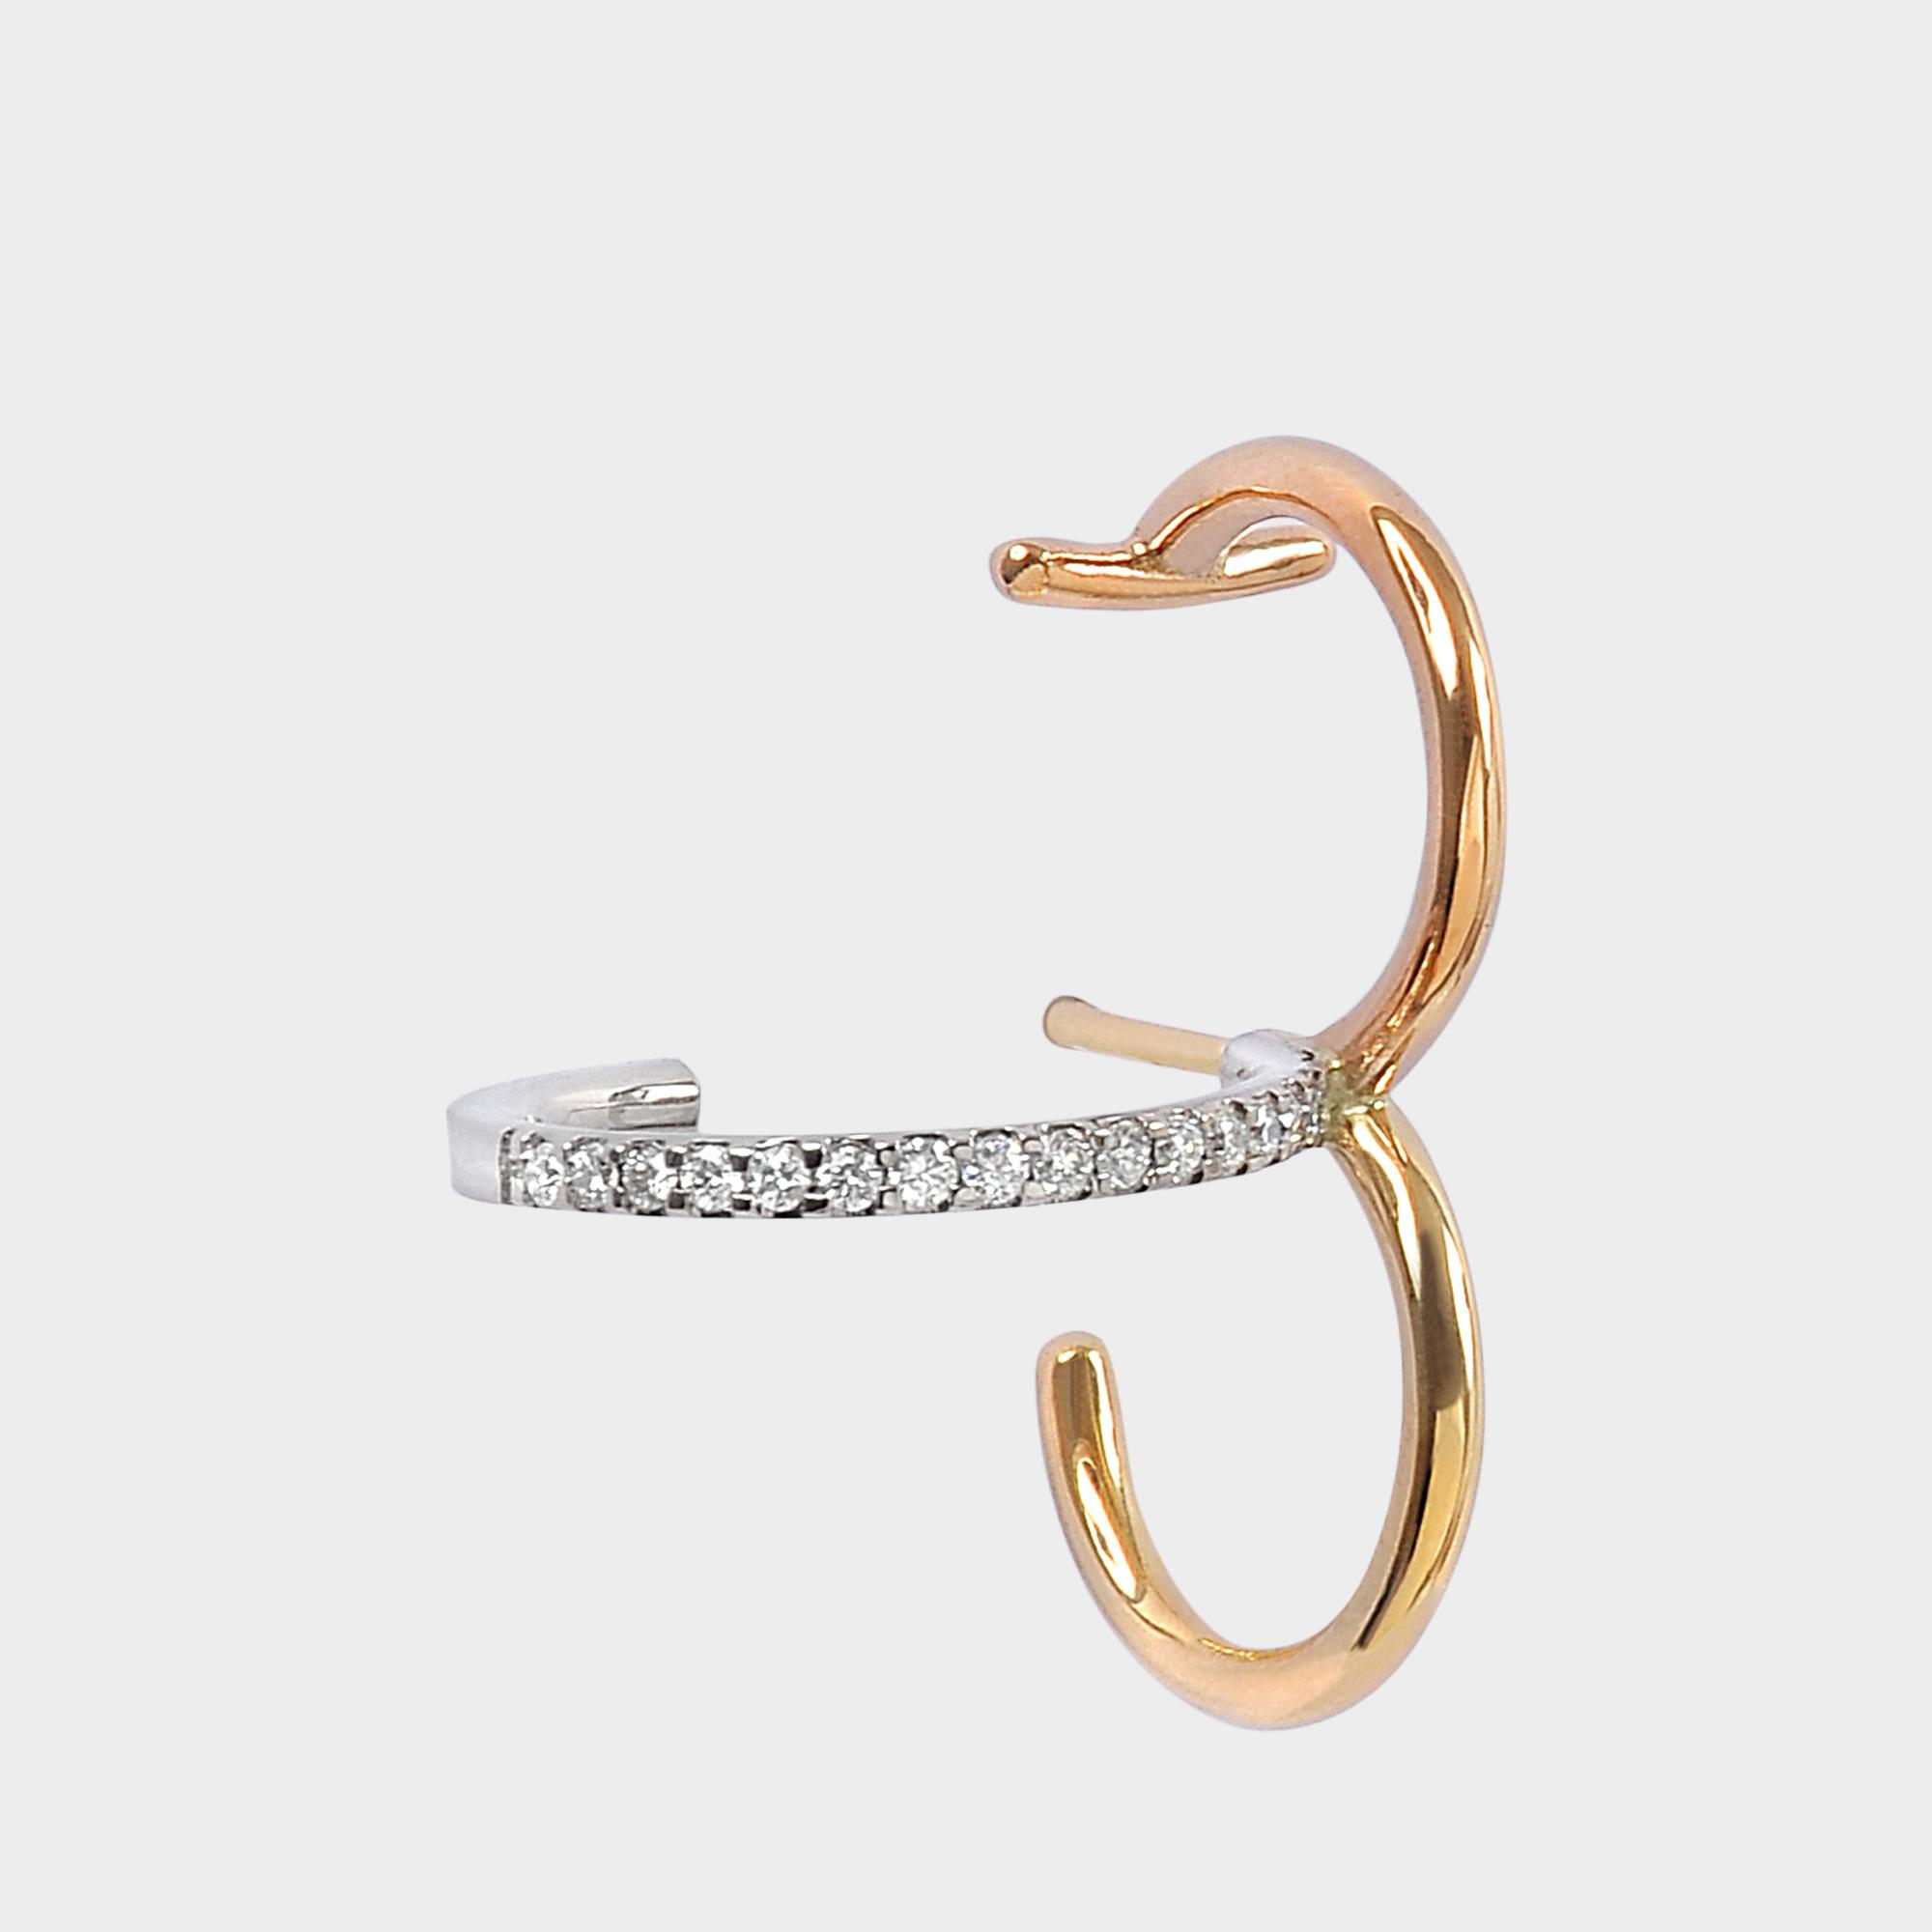 Charlotte Chesnais Saturn S Mono Earring in Yellow and White 18K Gold and Diamonds tGC12CM3